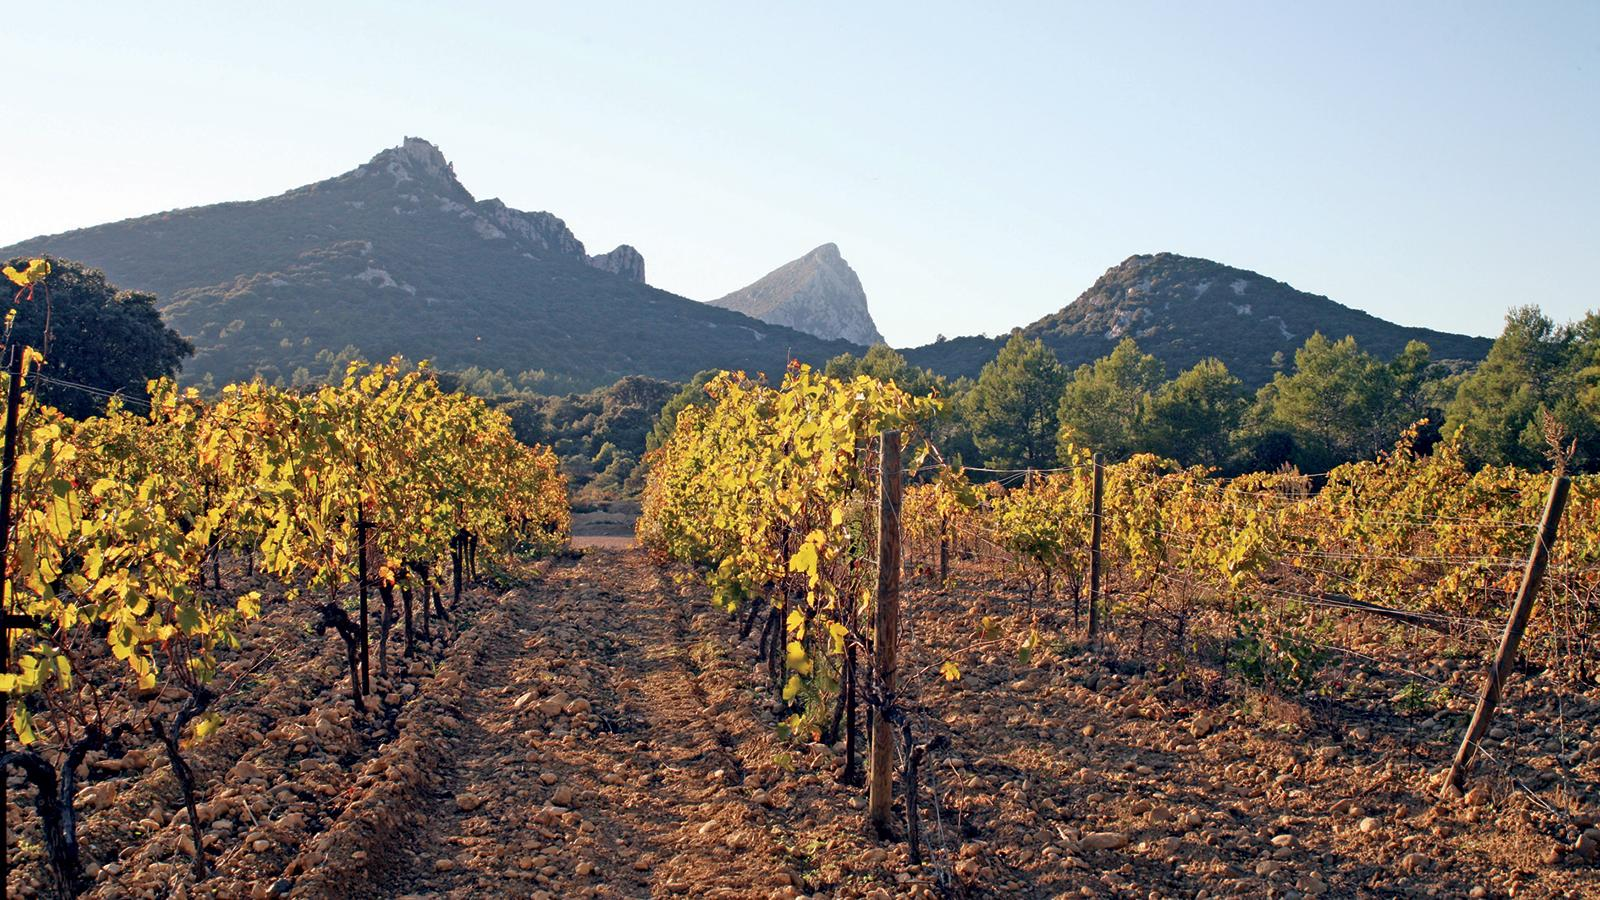 The Pic St.-Loup mountain looms over the vineyards of this Languedoc subregion.